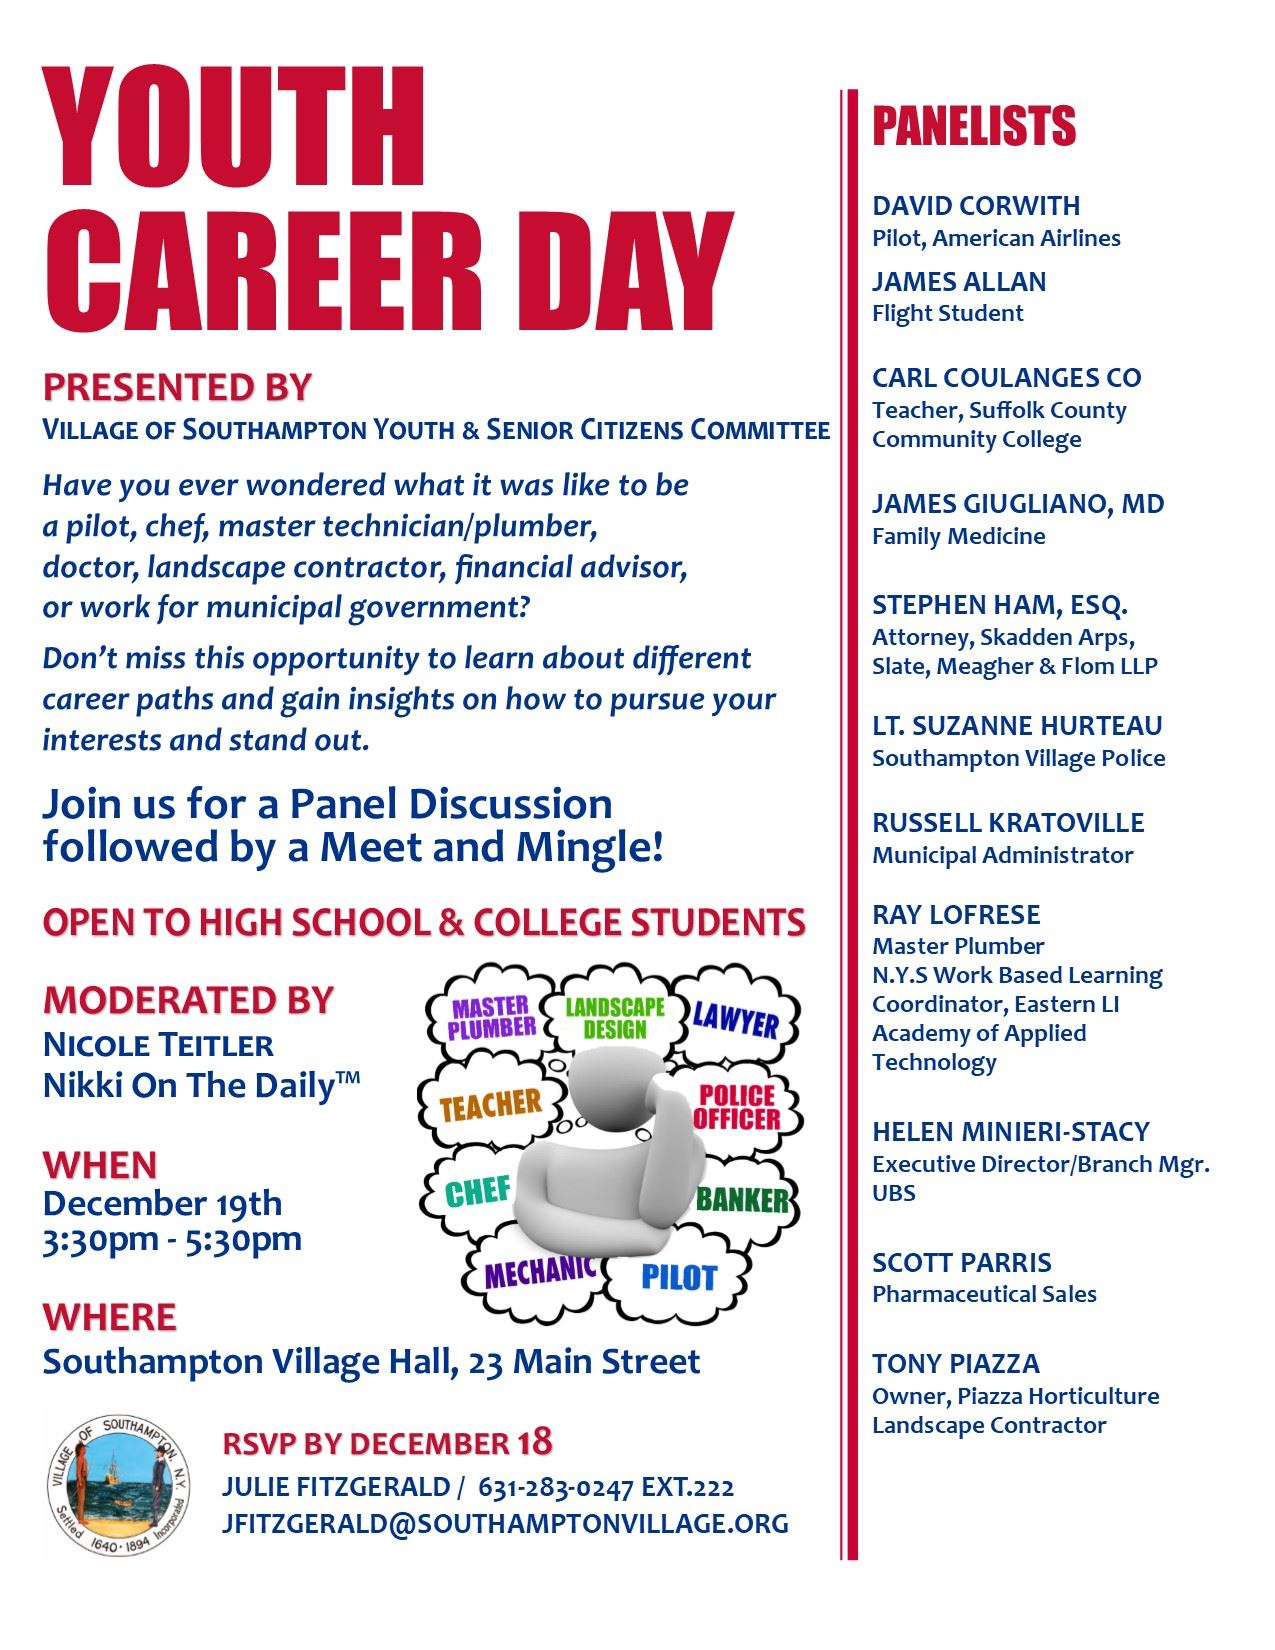 Image of Youth Career Day flyer